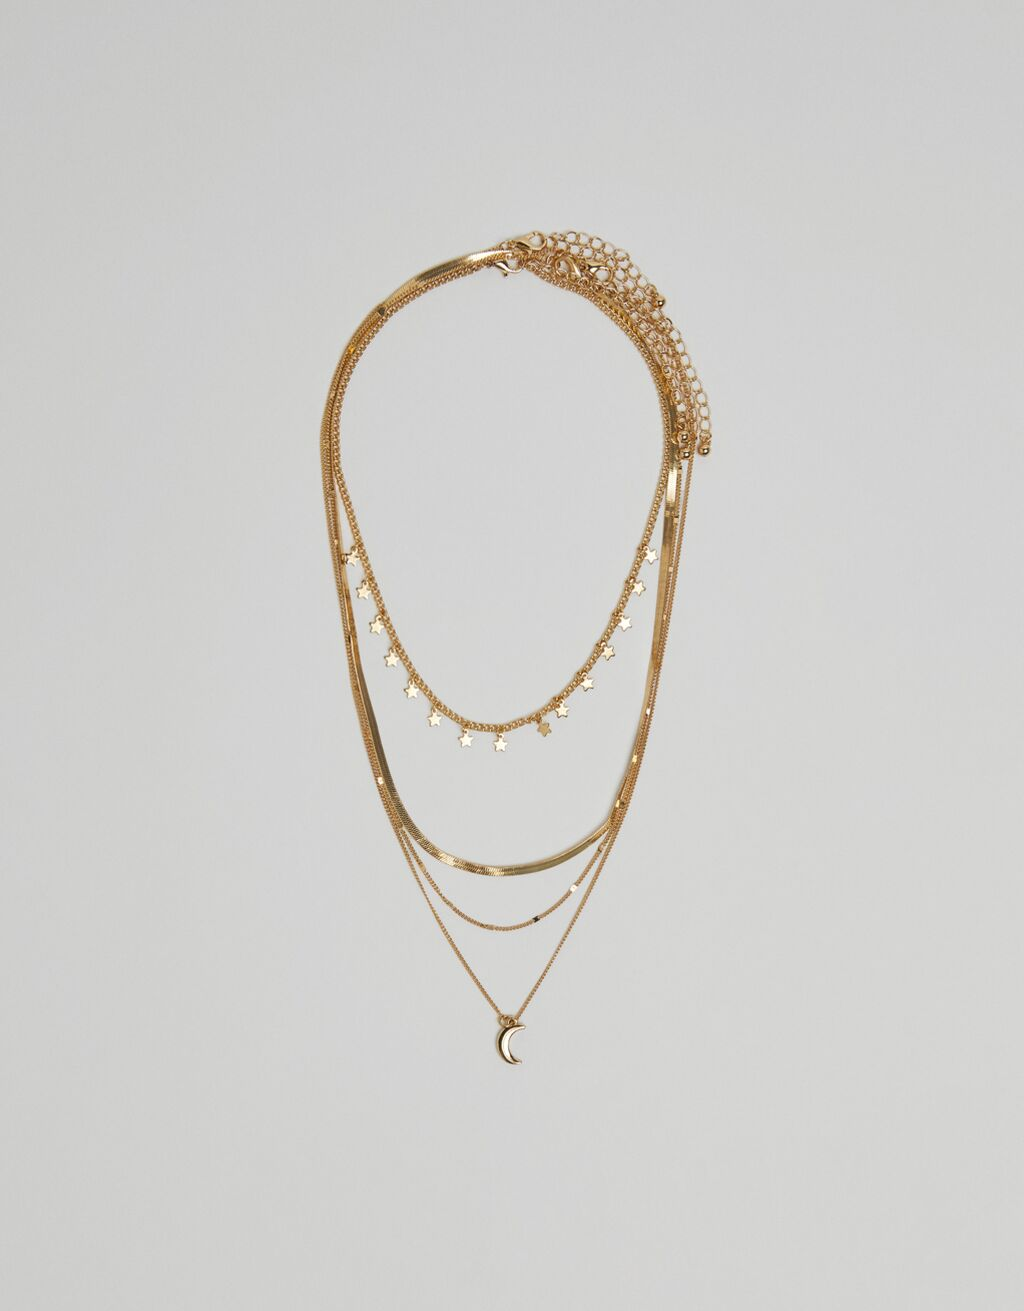 Multi-strand cosmos necklace